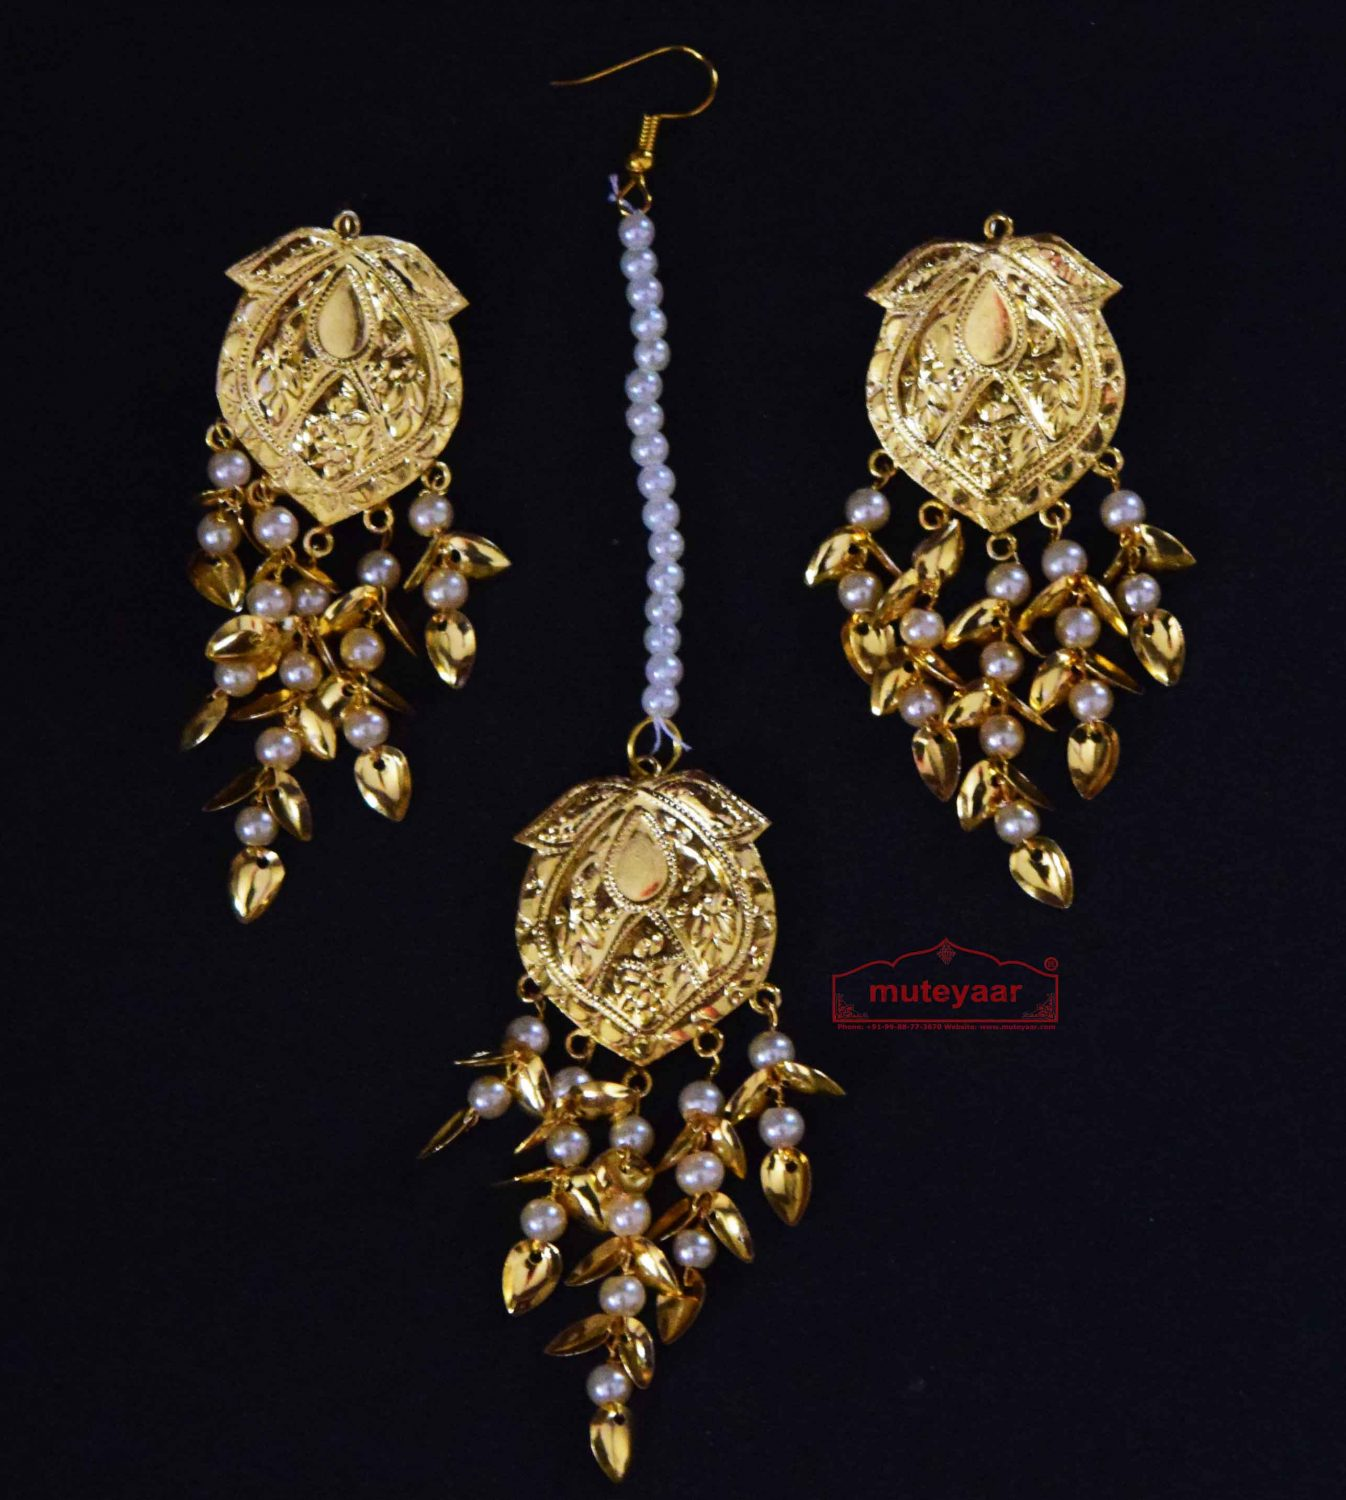 Gold Polished Punjabi Earrings Tikka set with white moti beads J0485 1